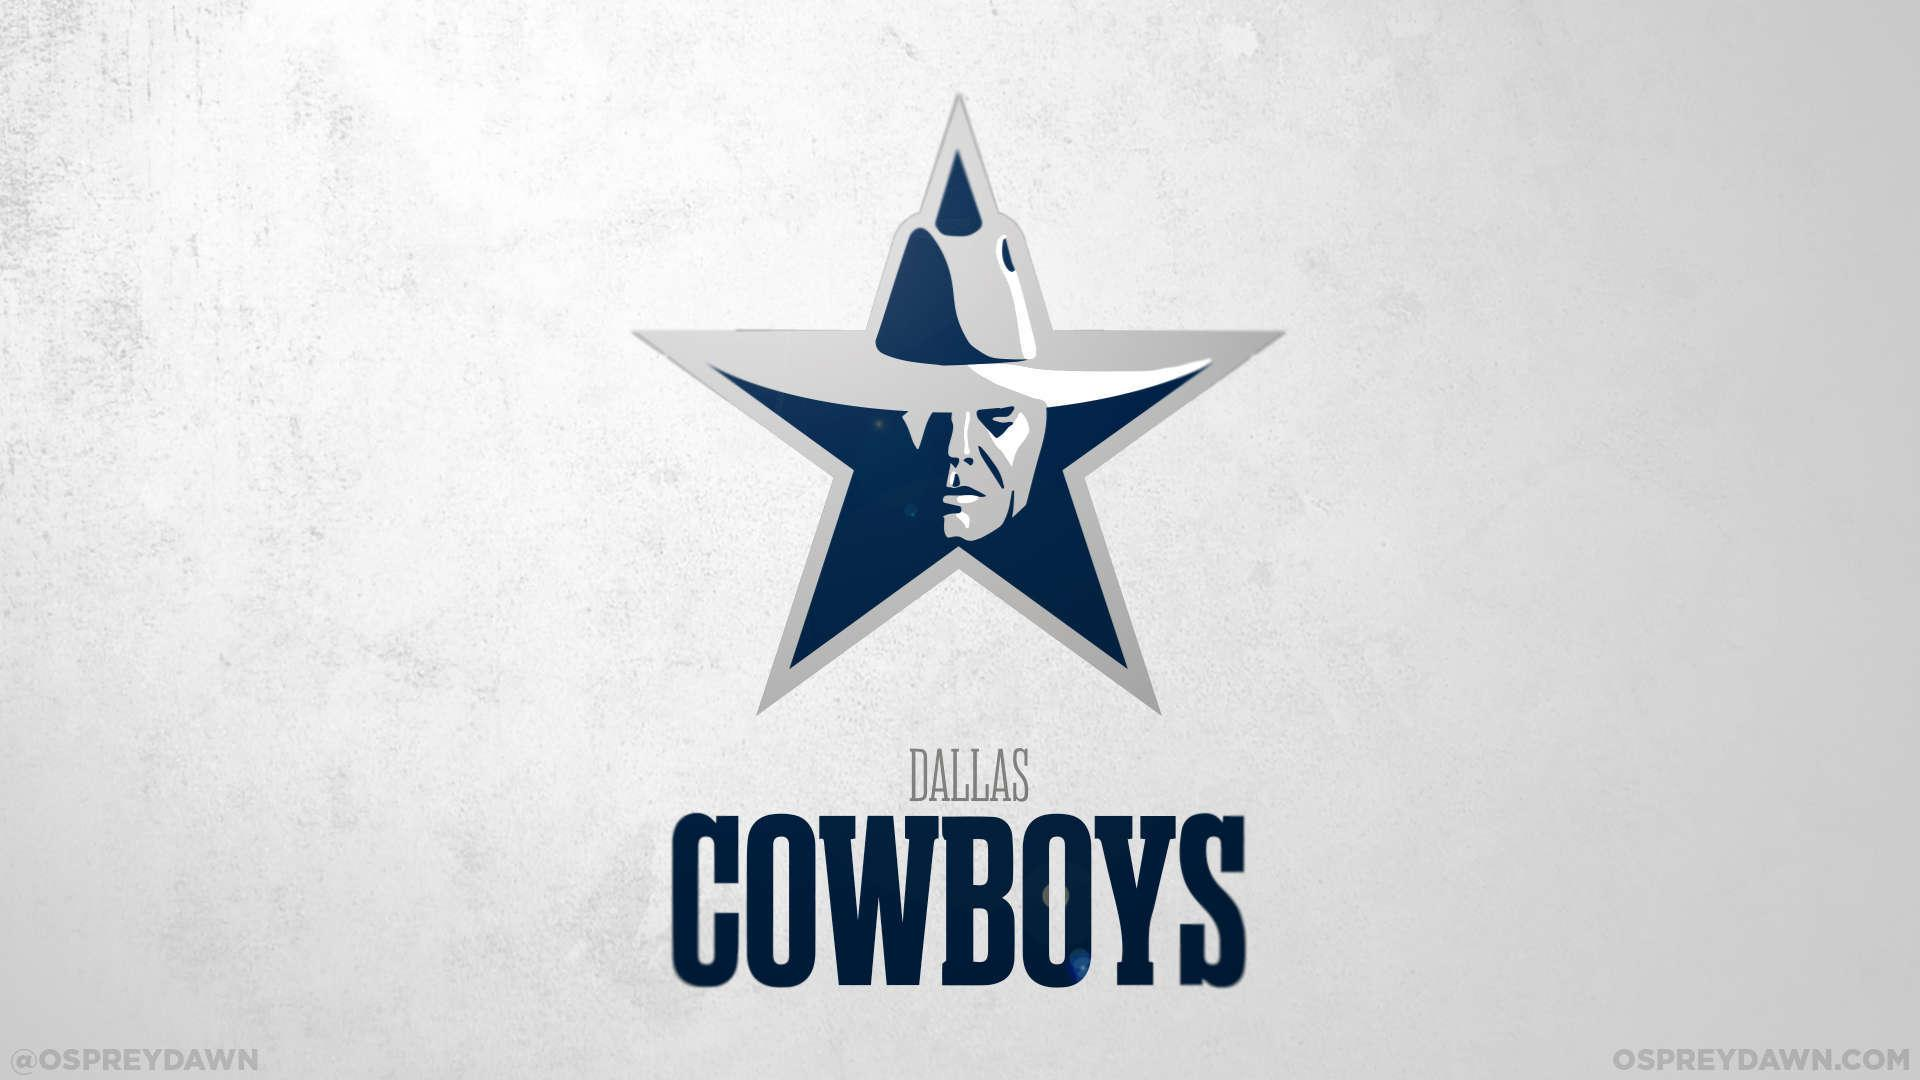 dallas cowboys backgrounds wallpaper cave photos of dallas cowboys logo show pictures of dallas cowboys logo